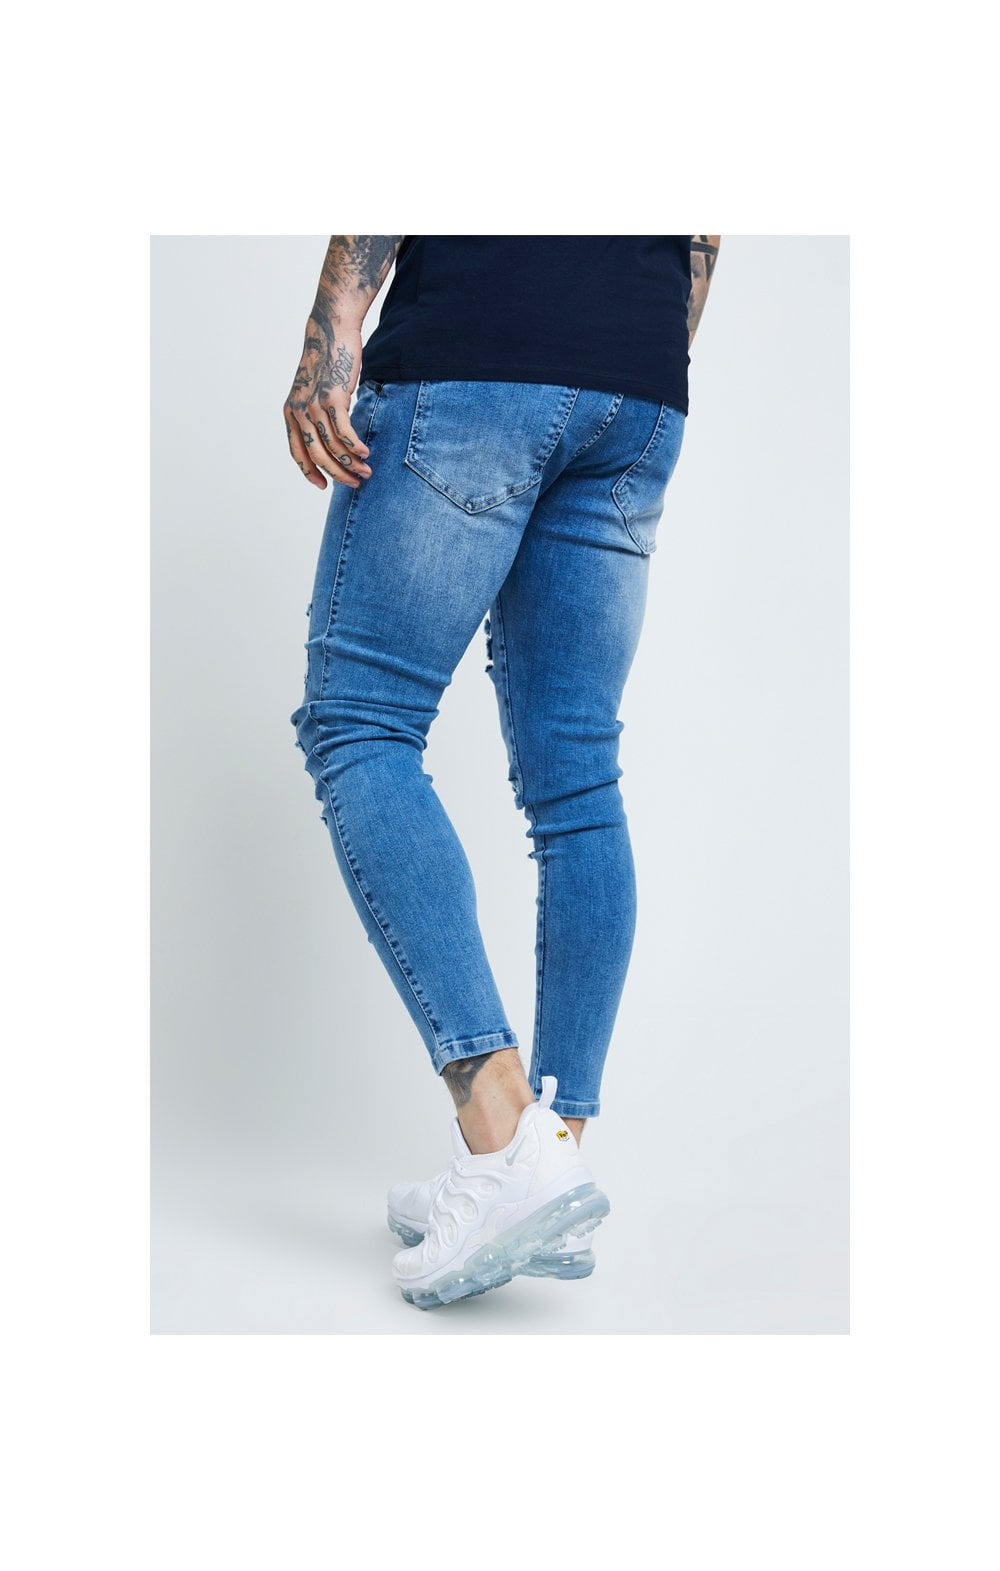 SikSilk Distressed Skinny Denims - Mid Wash (3)